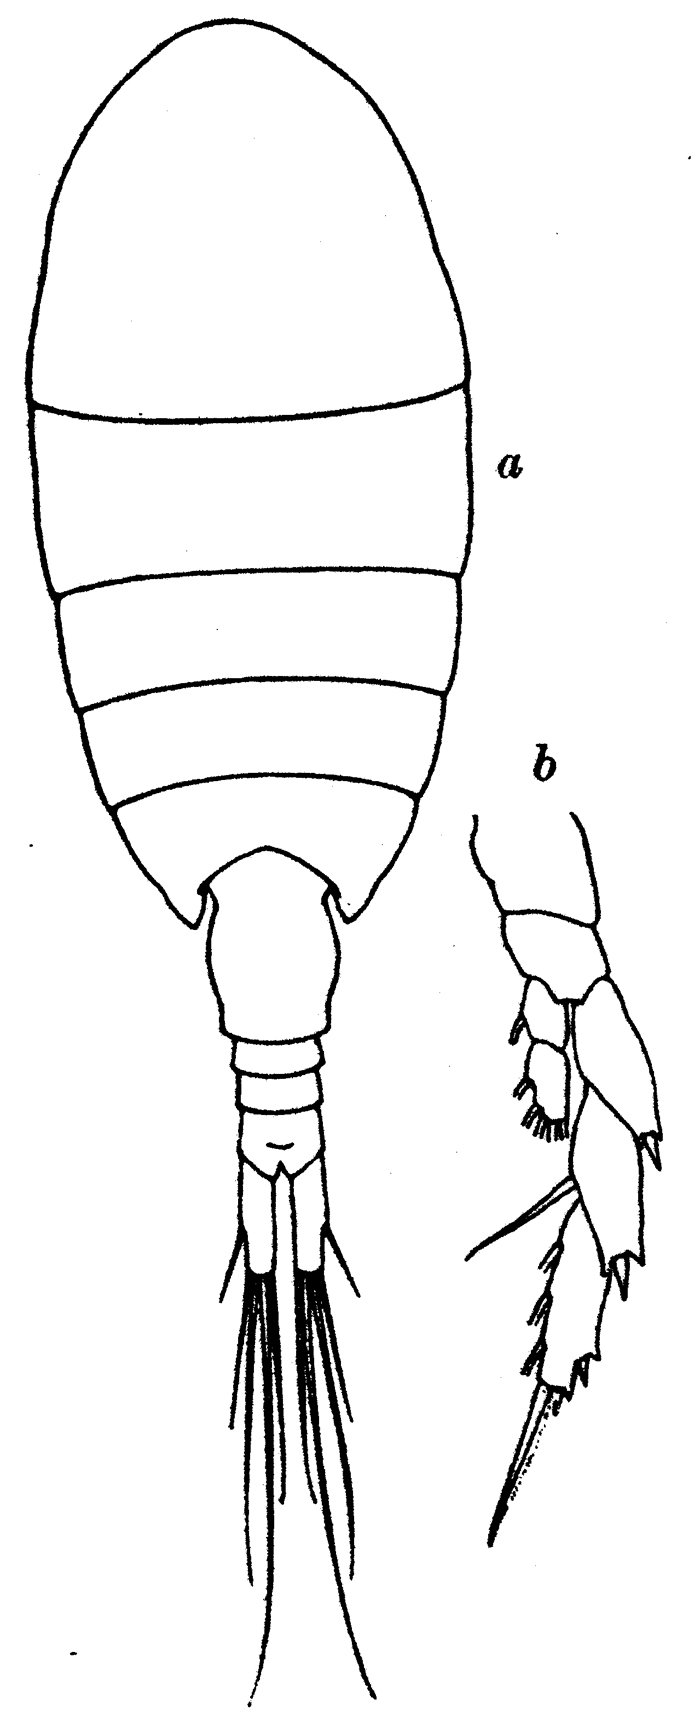 Species Lucicutia ovalis - Plate 11 of morphological figures